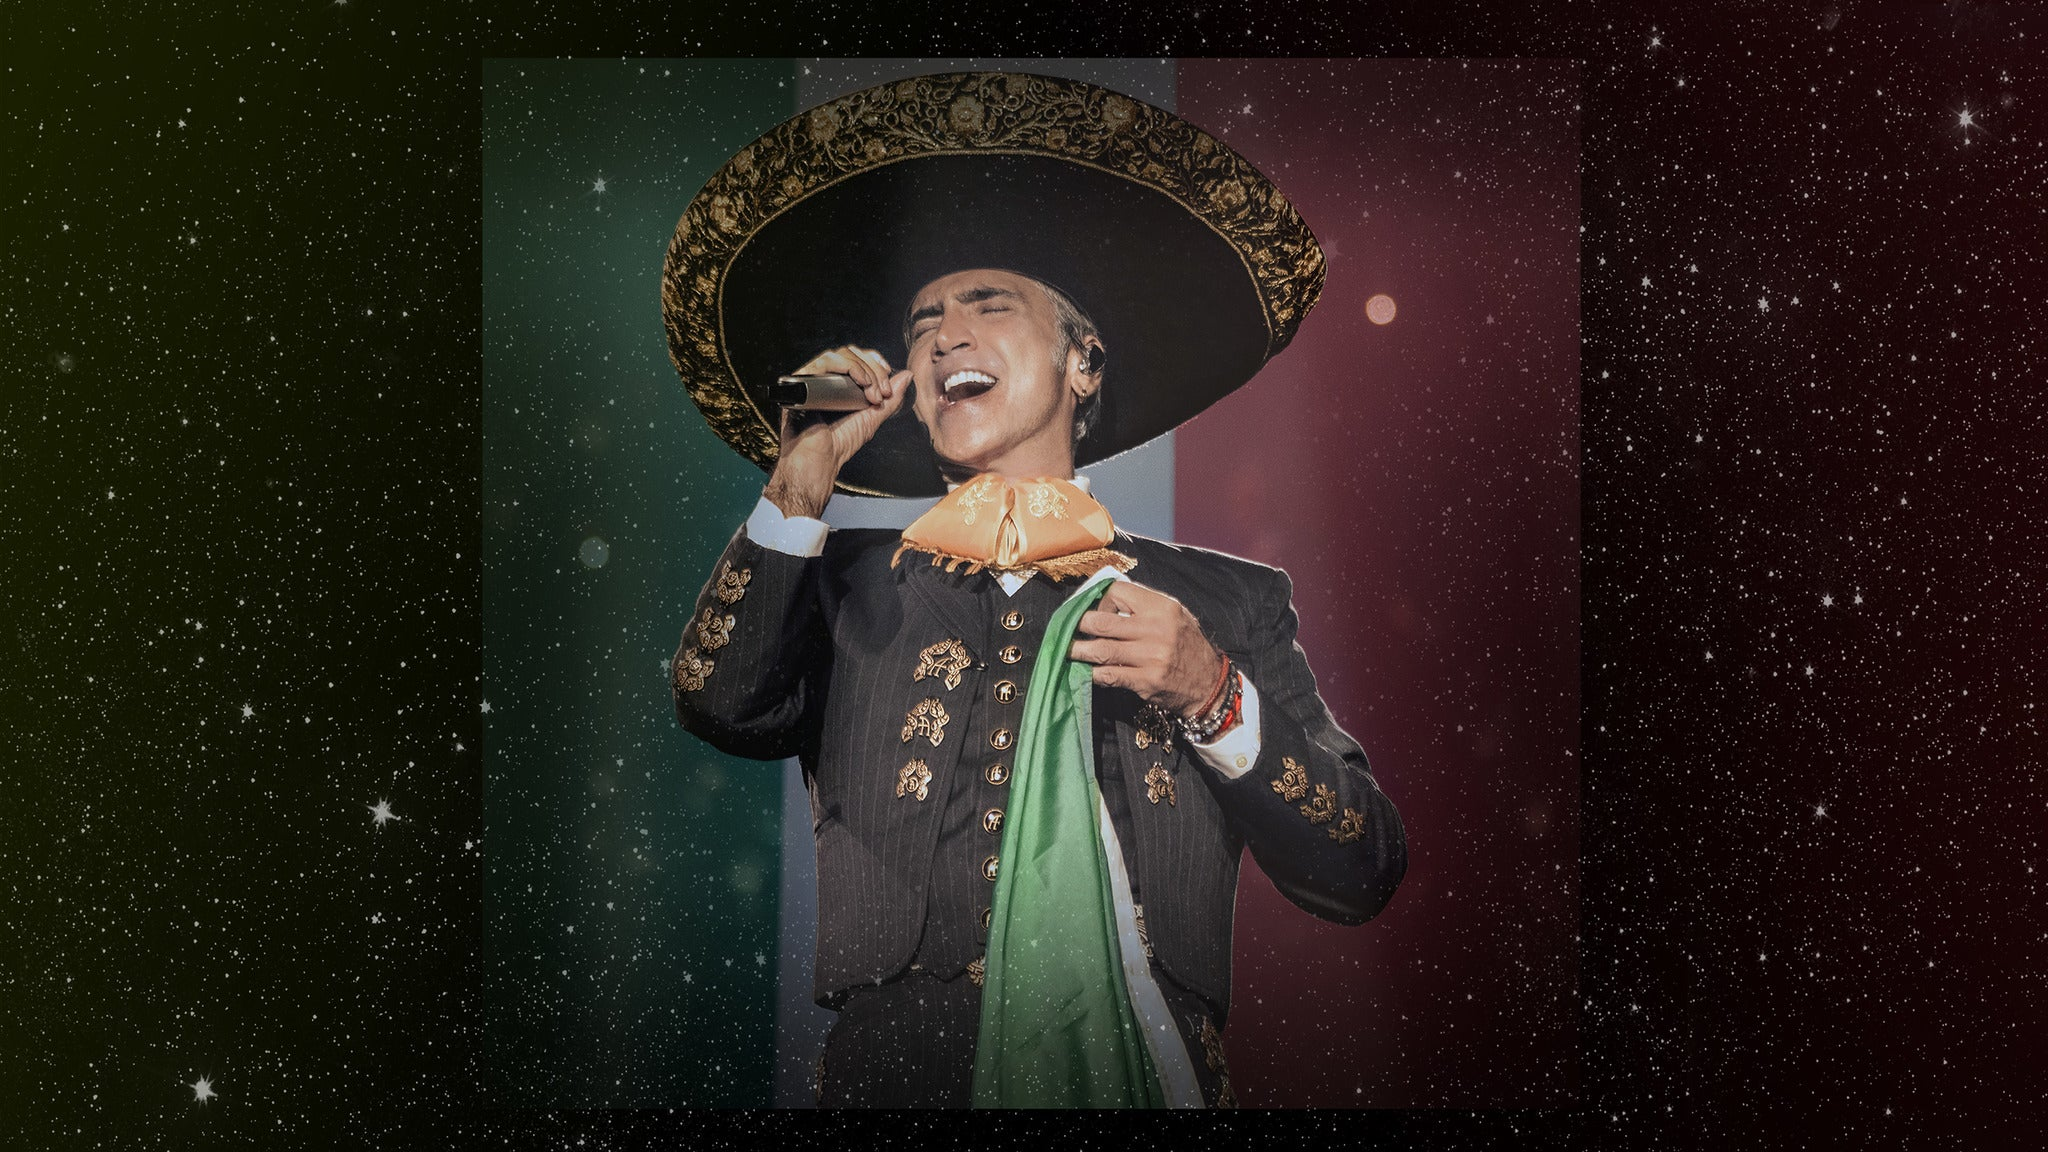 Alejandro Fernández - Hecho En México Tour 2021 - with Christian Nodal presale code for early tickets in San Diego